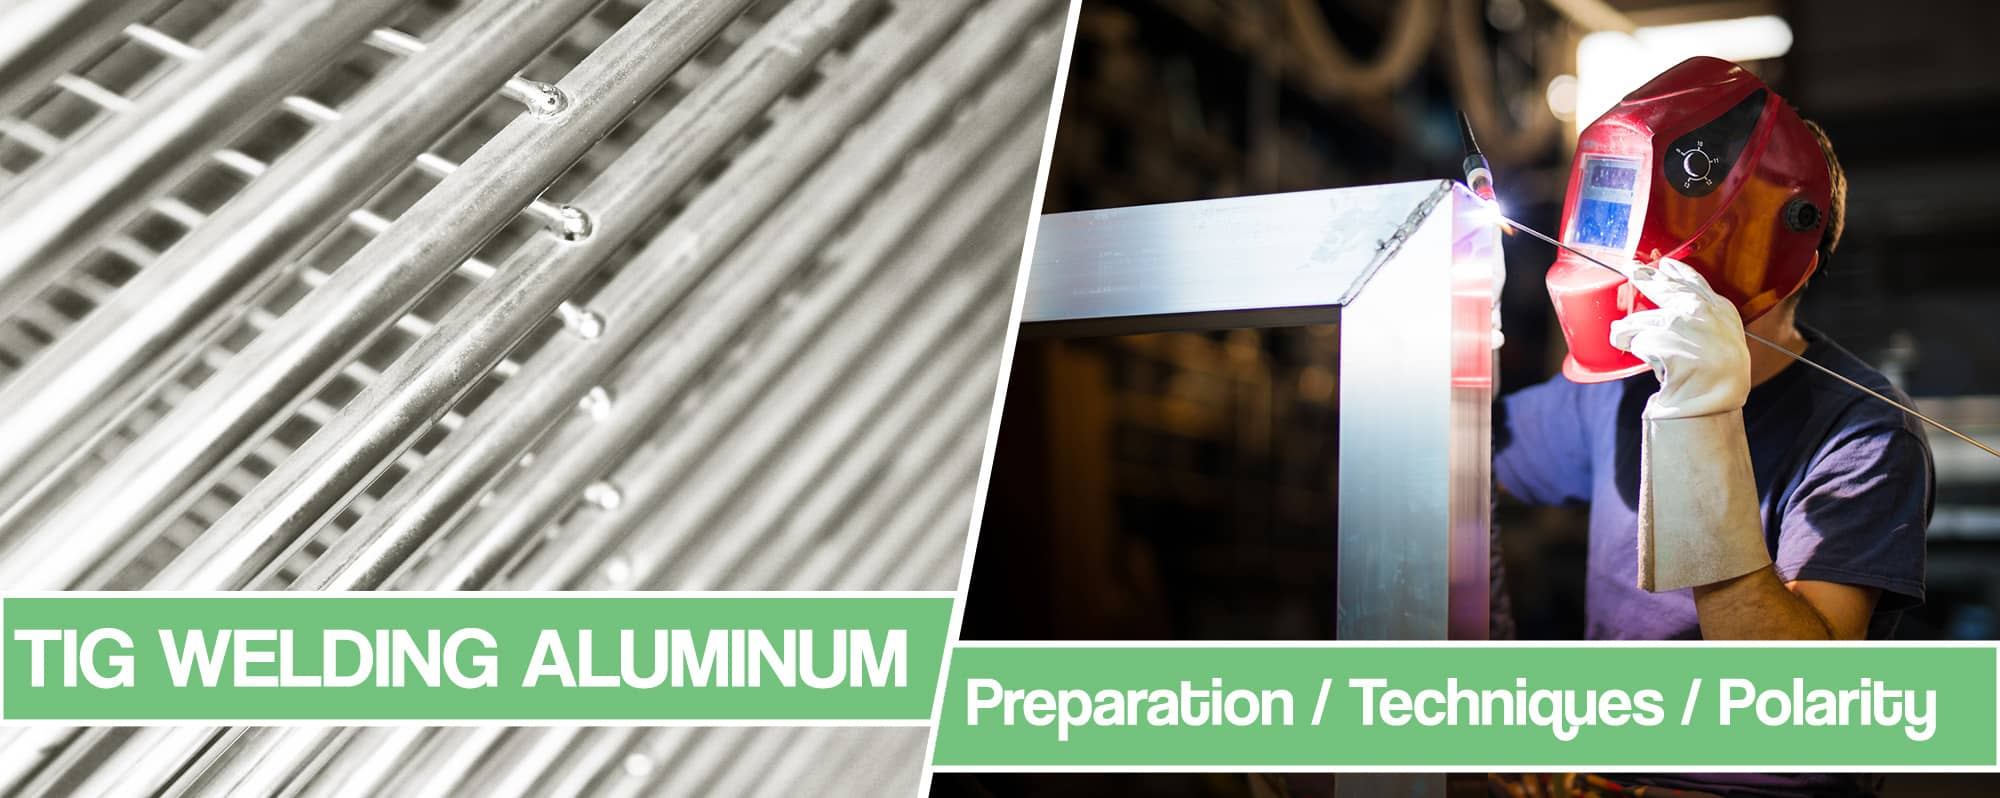 Feature image for TIG Welding Aluminum article